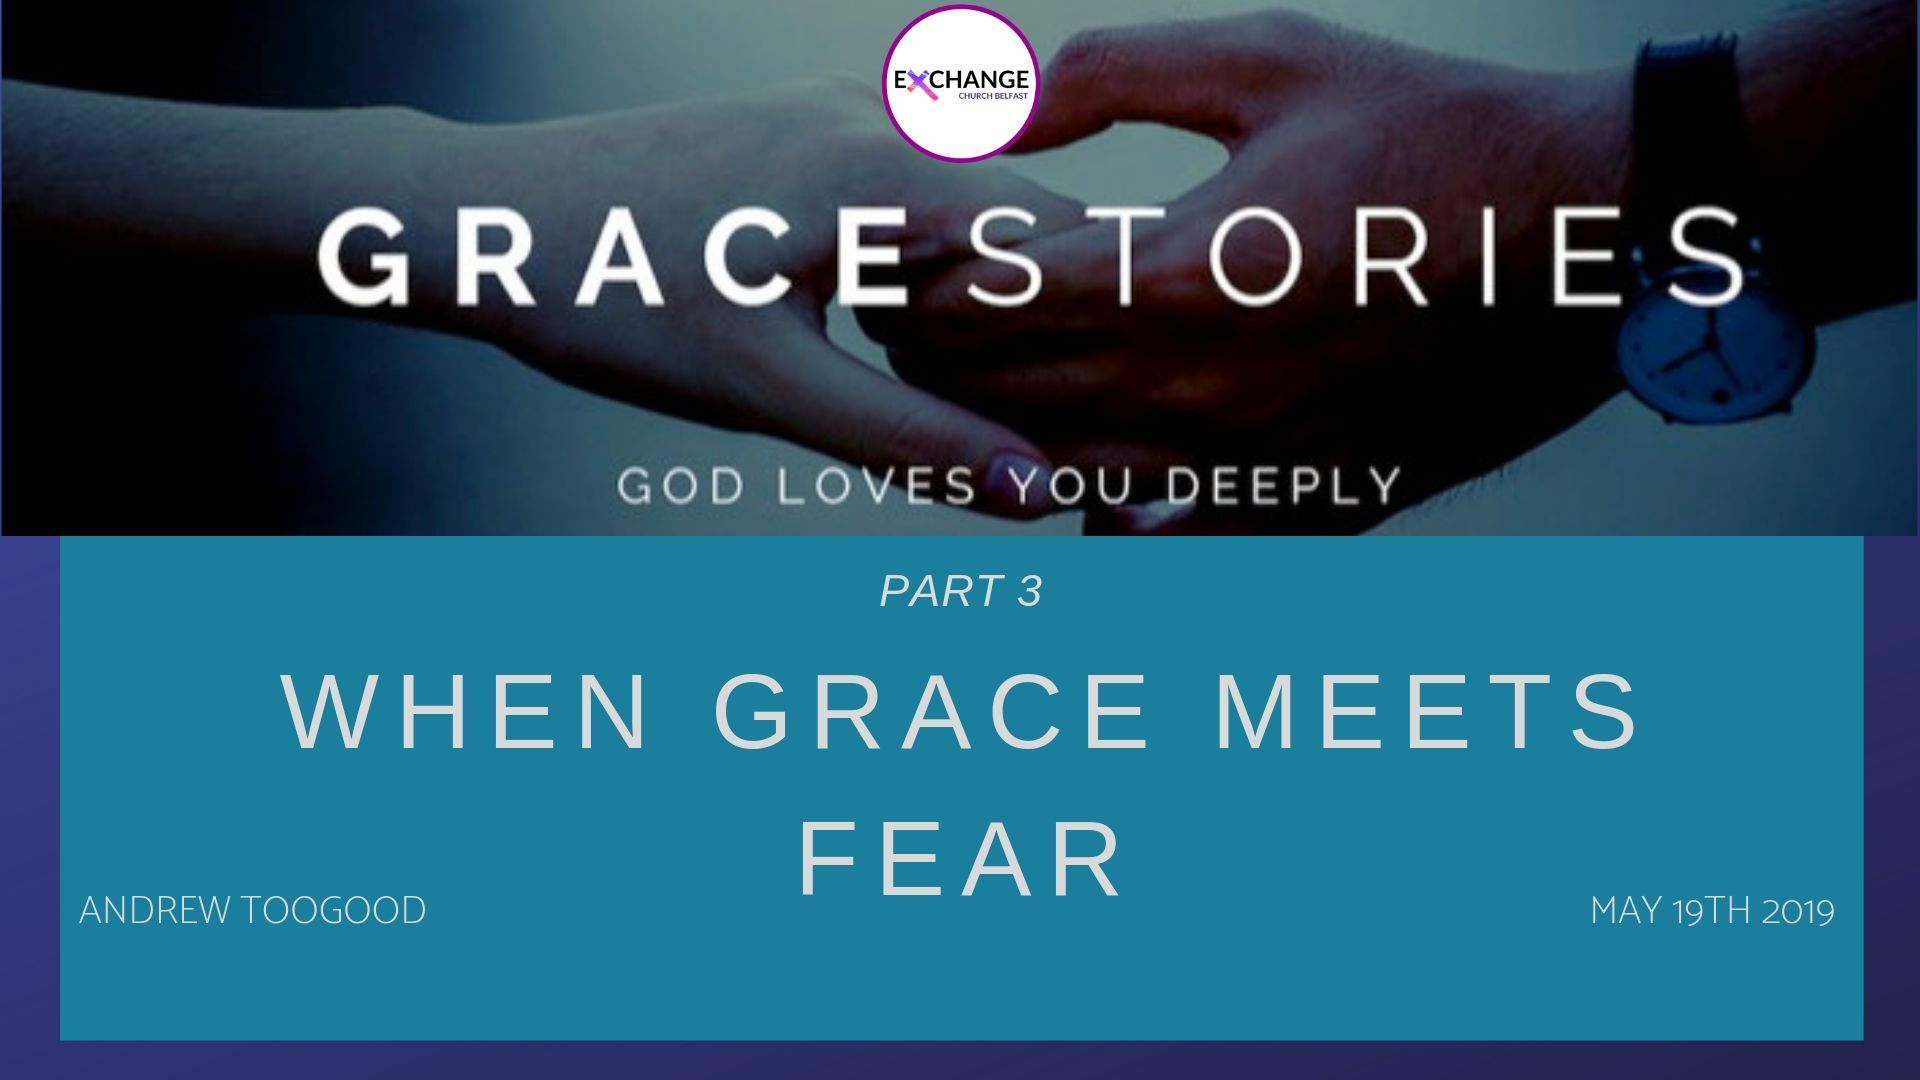 Grace Stories -part 3 - When grace meets fear